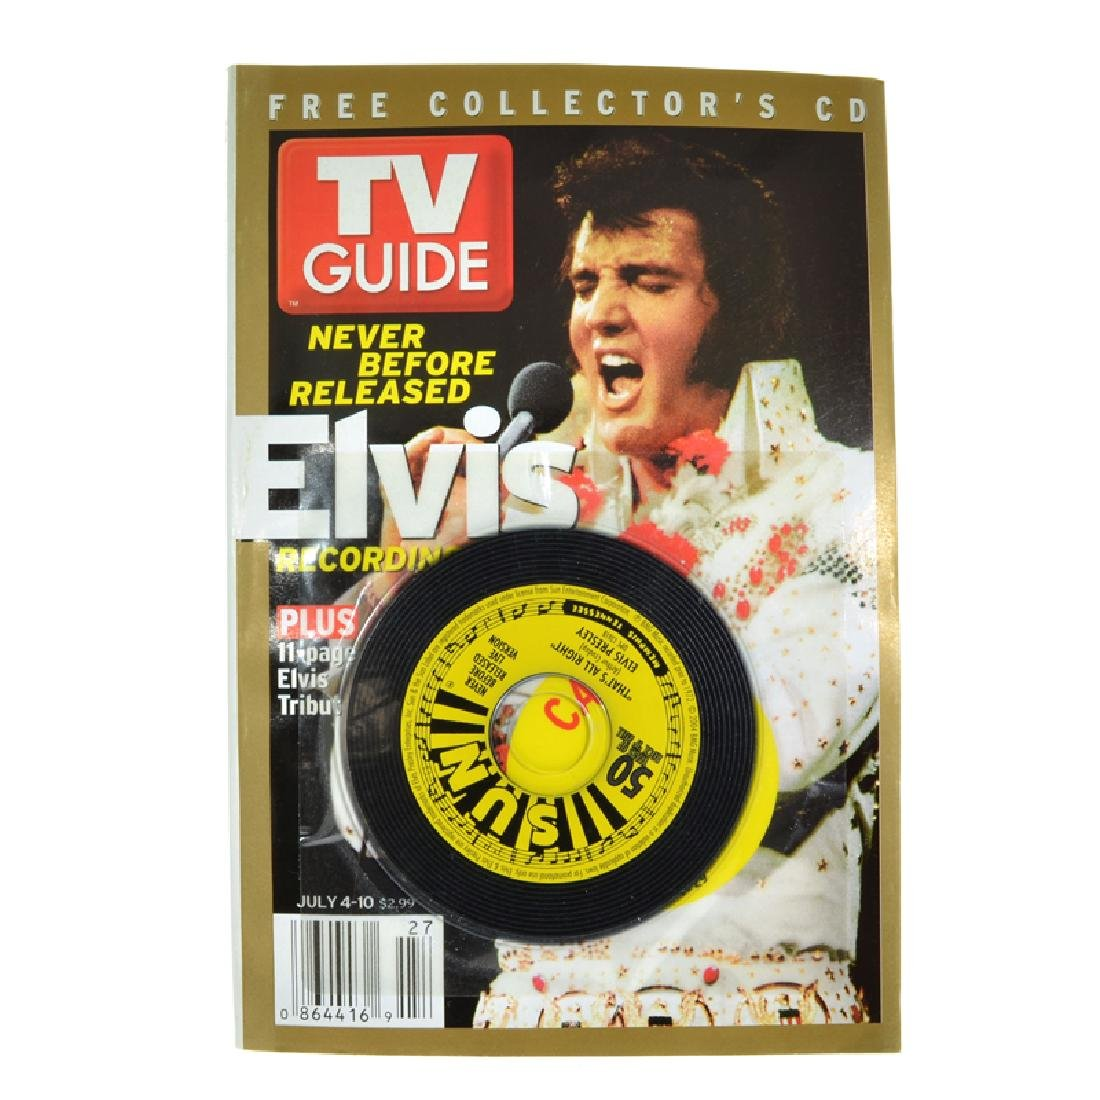 Rare Elvis Presley TV Guide Edition With Collector's CD